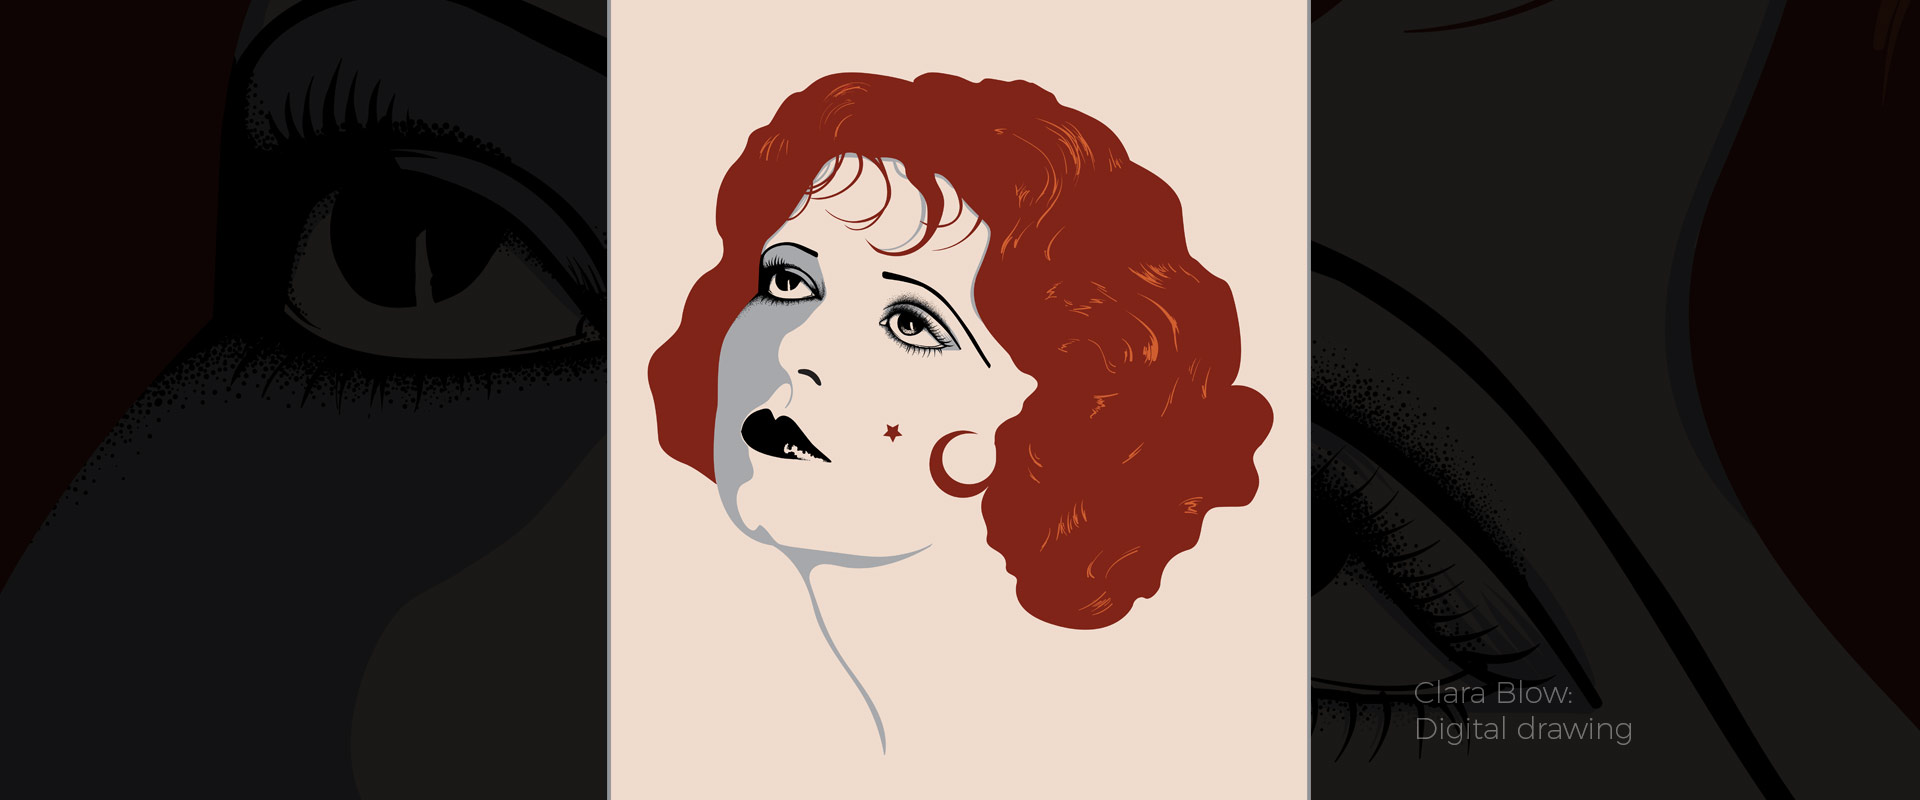 Clara Bow, illustration by David Hamley